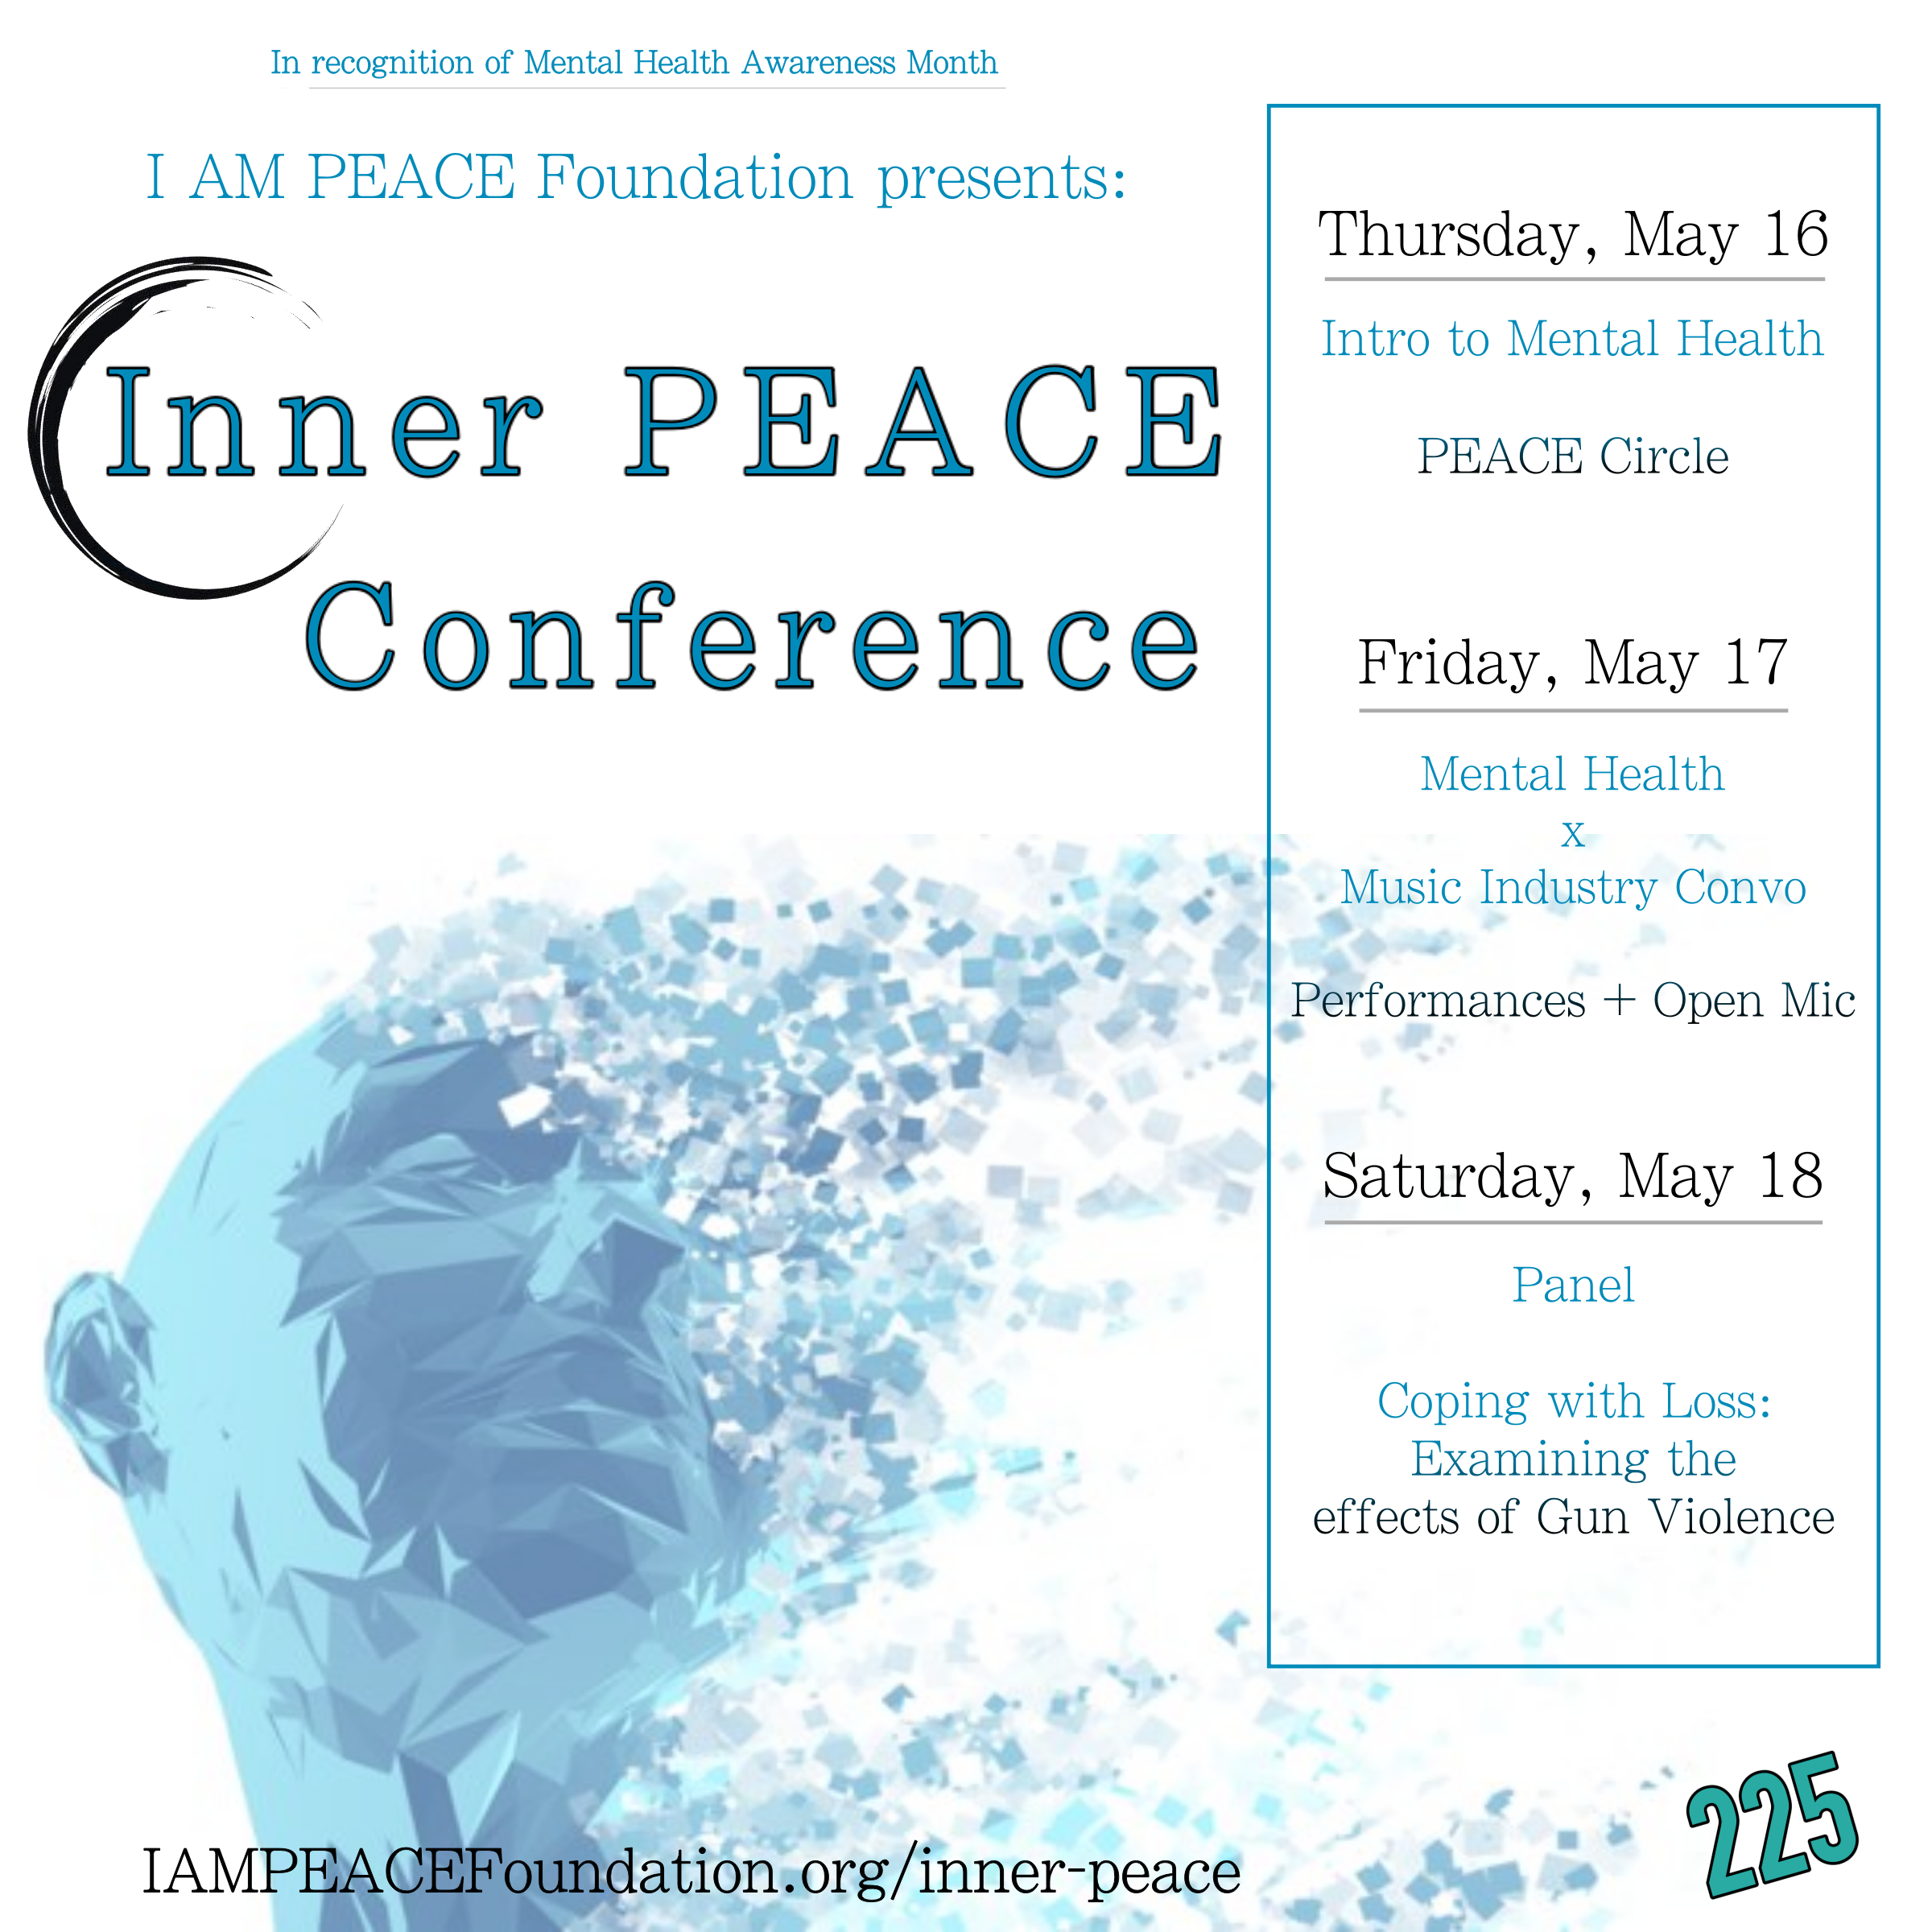 Inner PEACE conference flyer - PNG.png